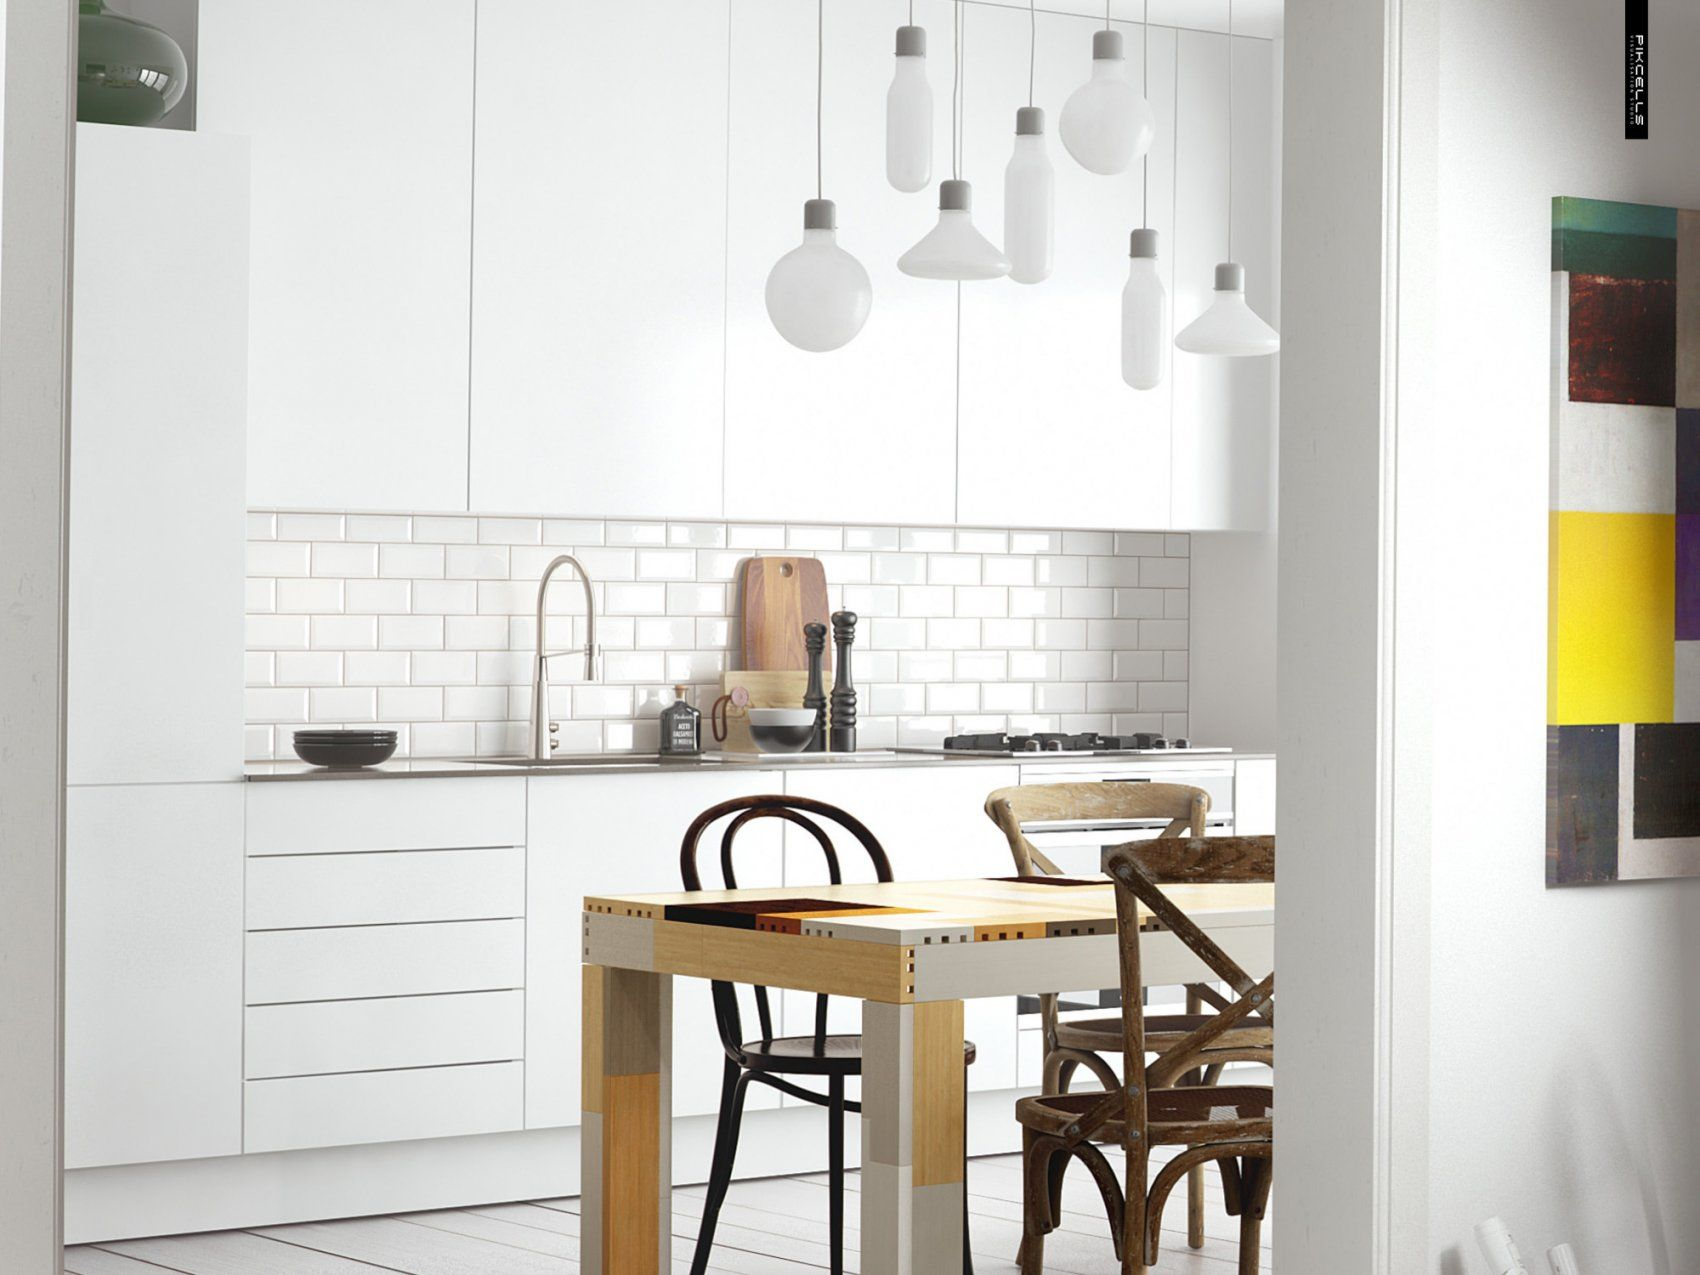 White scandinavian kitchen by pikcells visualisation for Modern scandinavian kitchen design